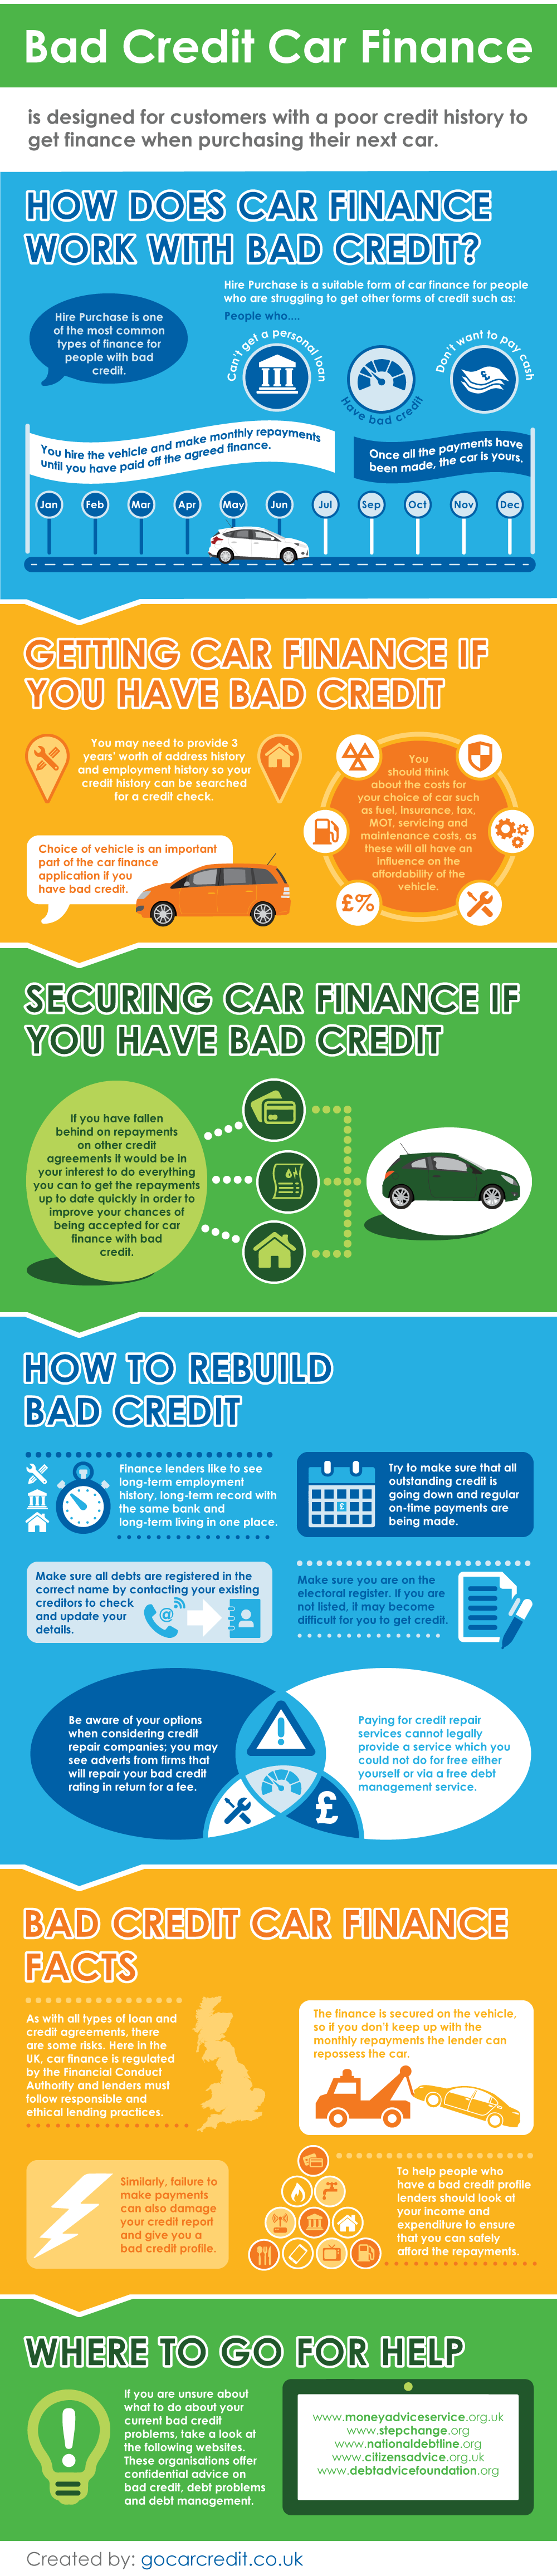 bad-credit-car-finance-infographic